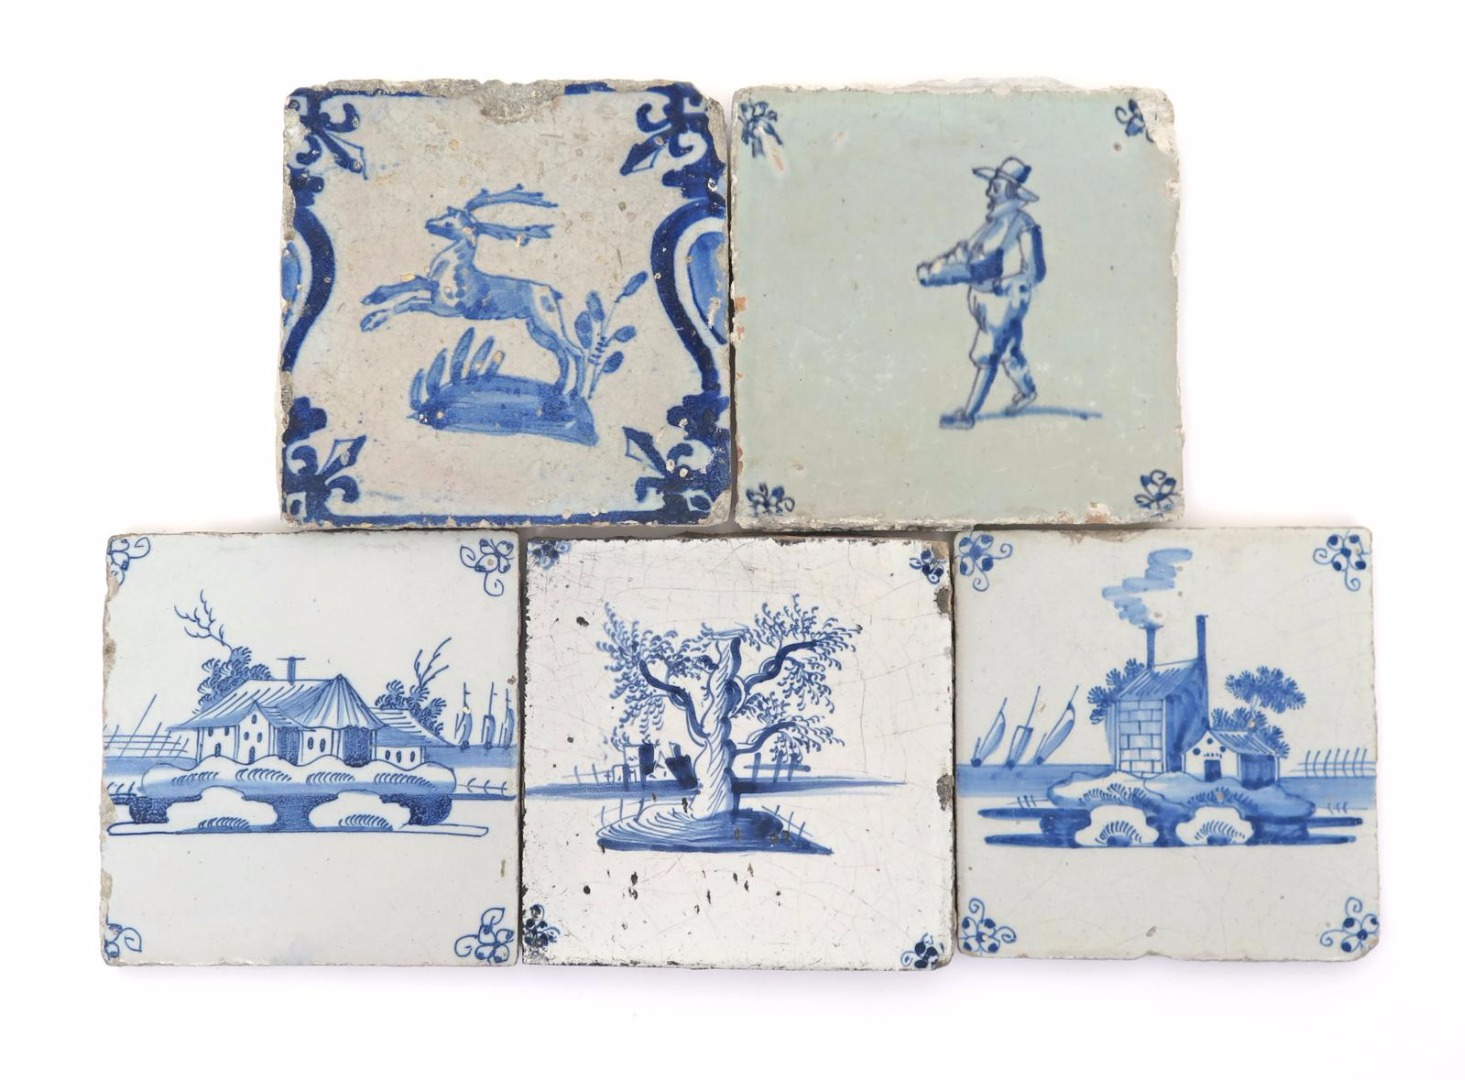 Five delft tiles 17th and 18th centuries lot 187 english english european ceramics glass lot 187 dailygadgetfo Images